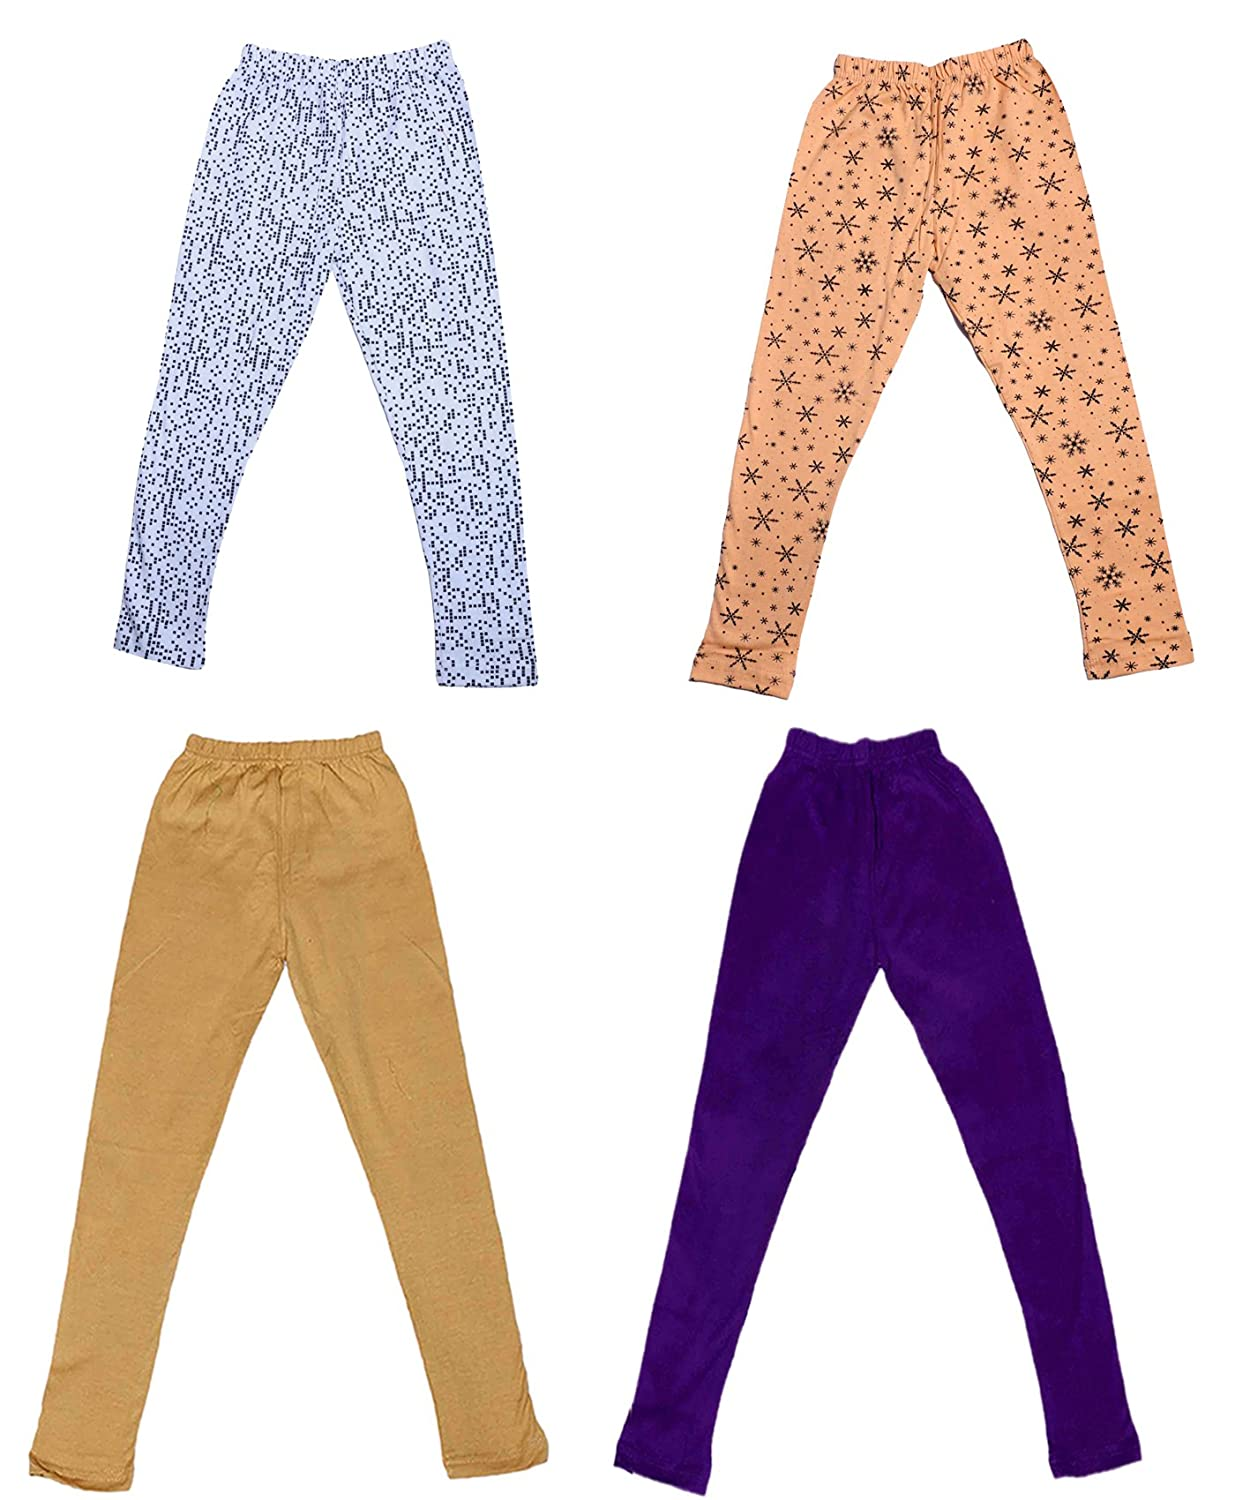 Indistar Girls 2 Cotton Solid Legging Pants /_Multicolor/_Size-7-8 Years/_71401021921-IW-P4-30 Pack Of 4 and 2 Cotton Printed Legging Pants